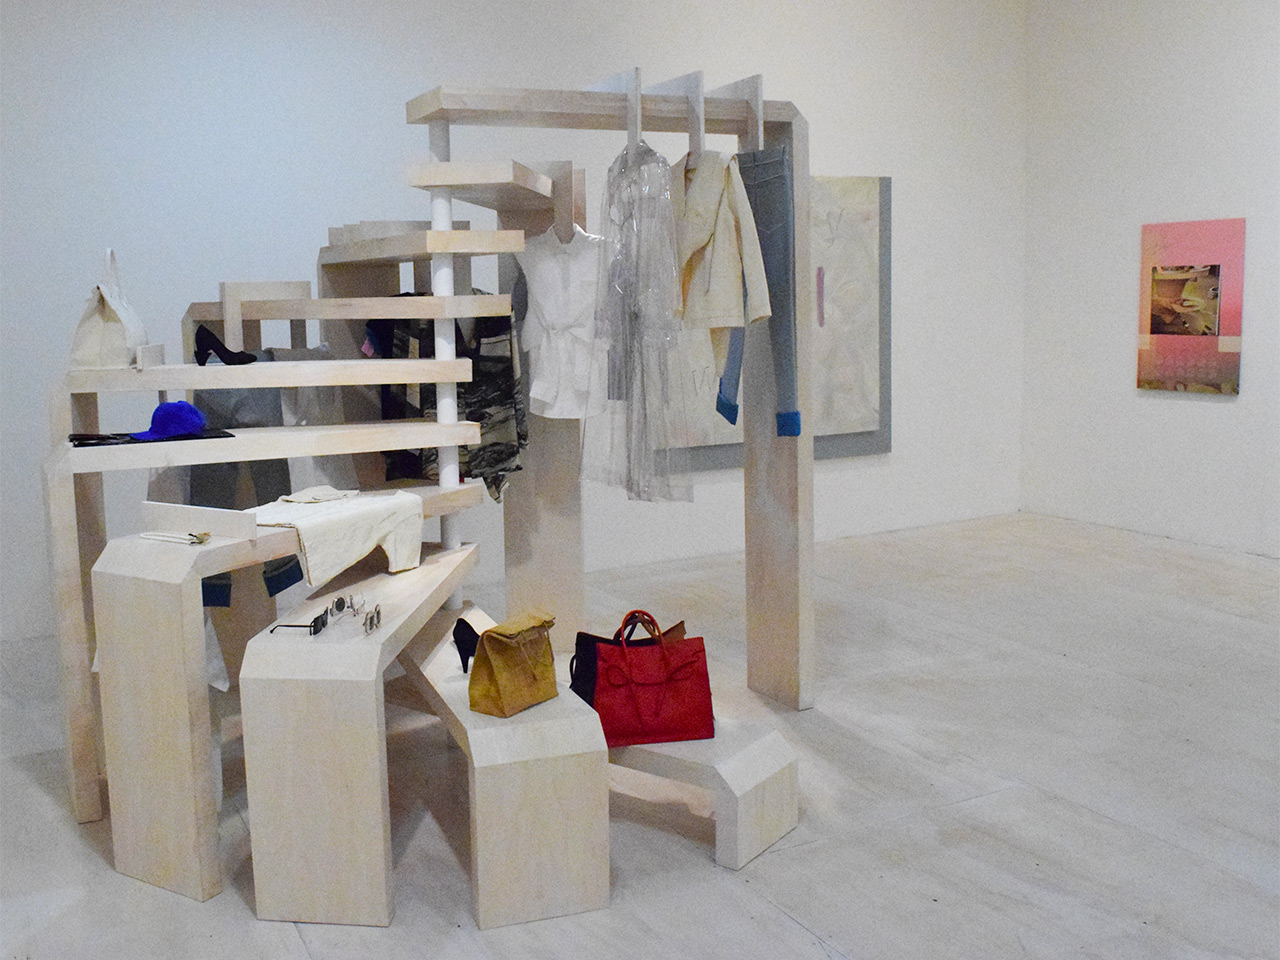 An installation and objects by Slow and Steady Wins the Race (left) and a painting by Seth Price (right)